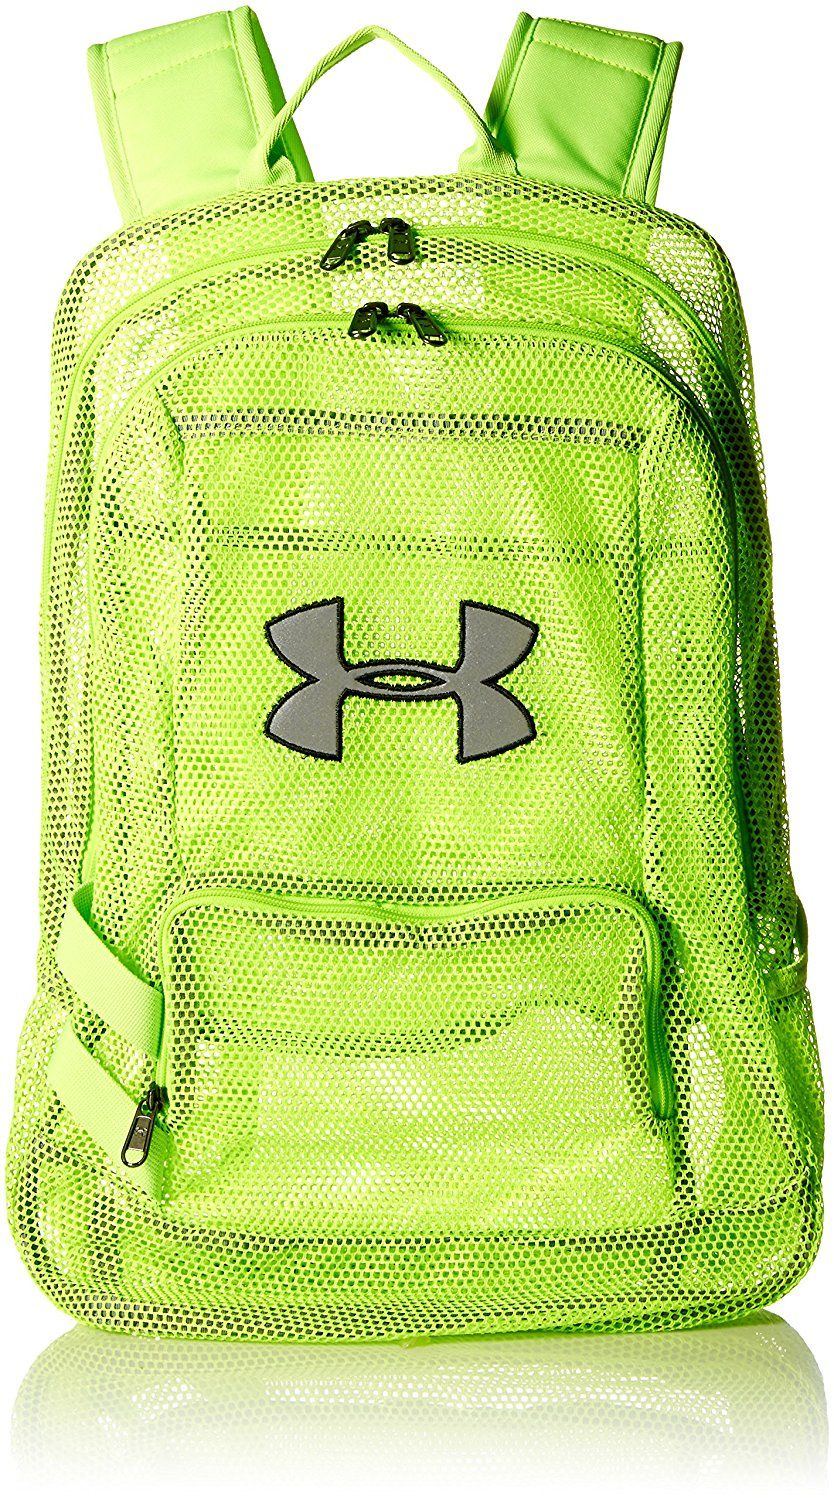 Buy Under Armour Mesh Backpack - CEAGESP ba4fc09dba